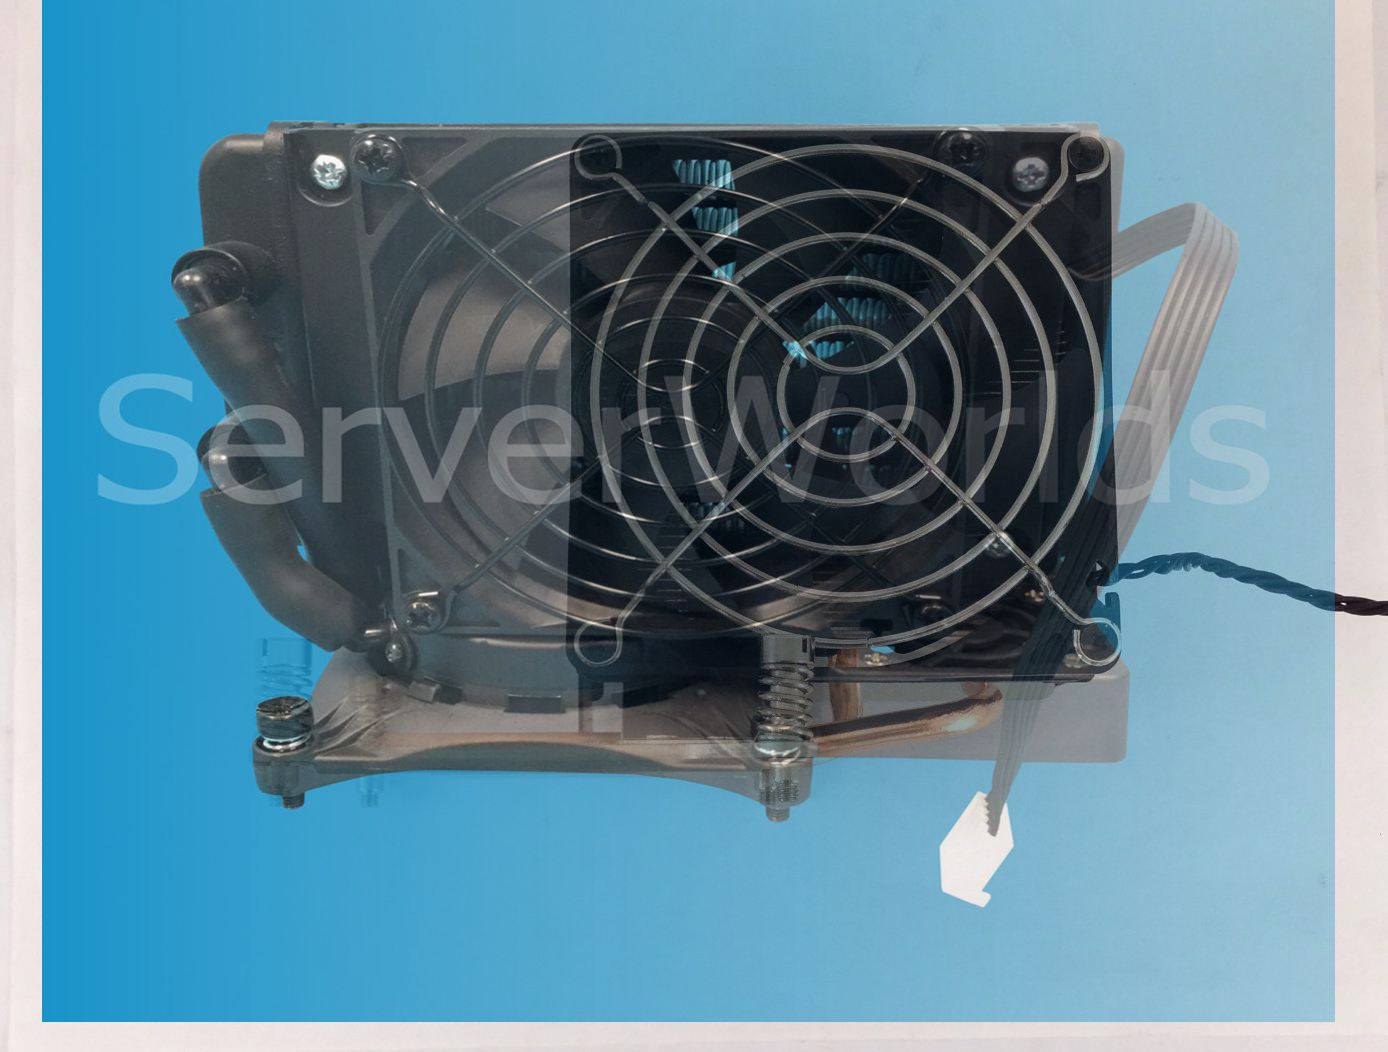 Successful Low Cost Liquid Cooling in HP z620 - HP Support Forum ...